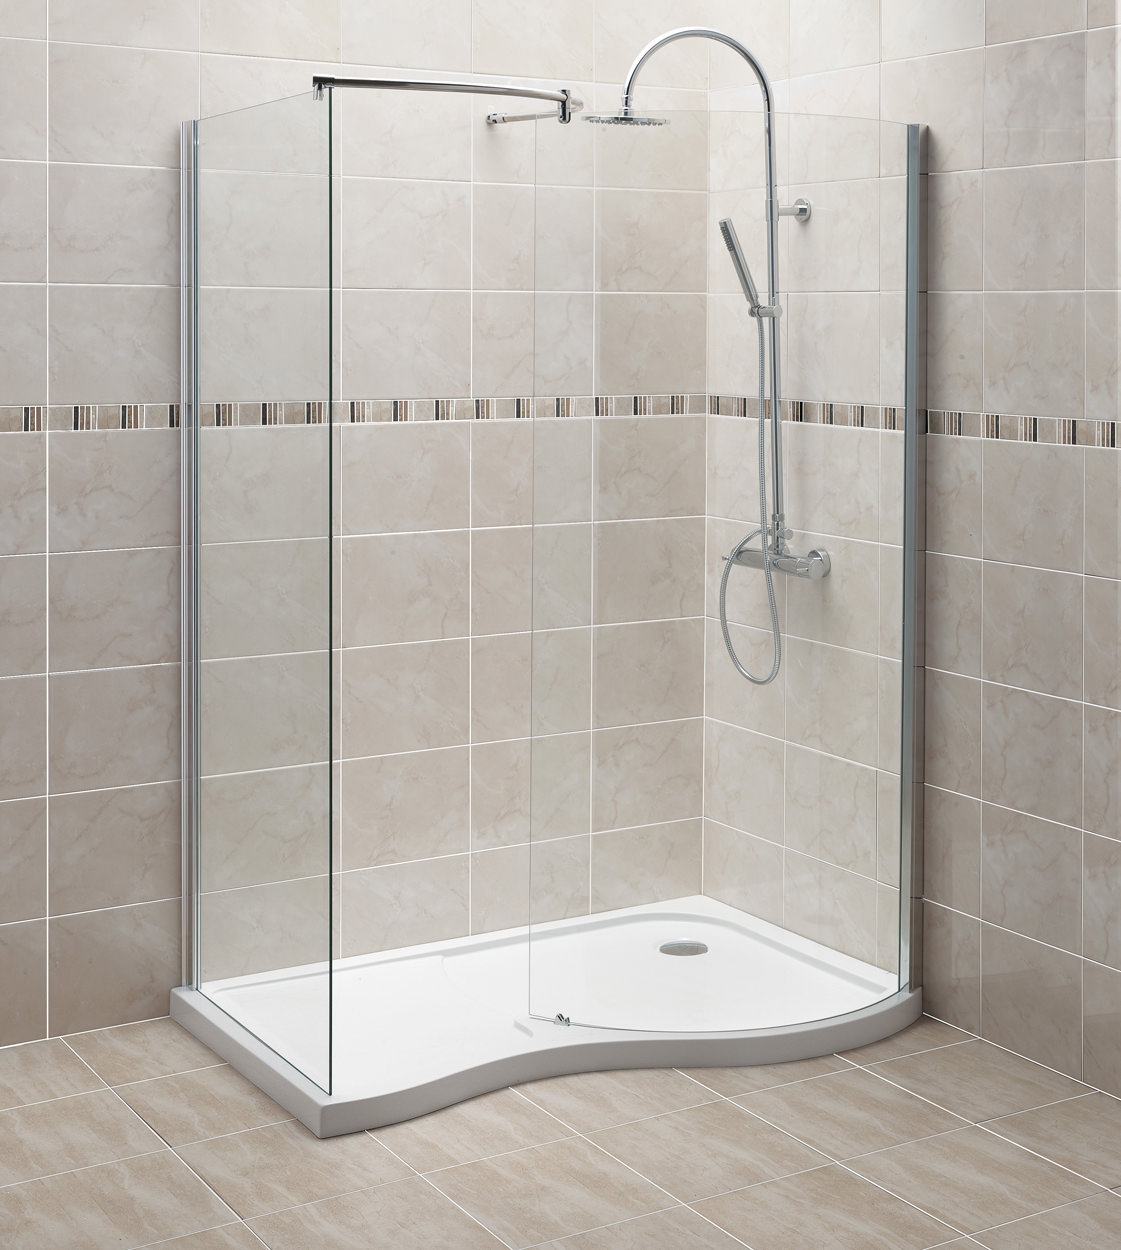 Beo 1400 X 906mm Curved Walk In Shower Enclosure With Tray